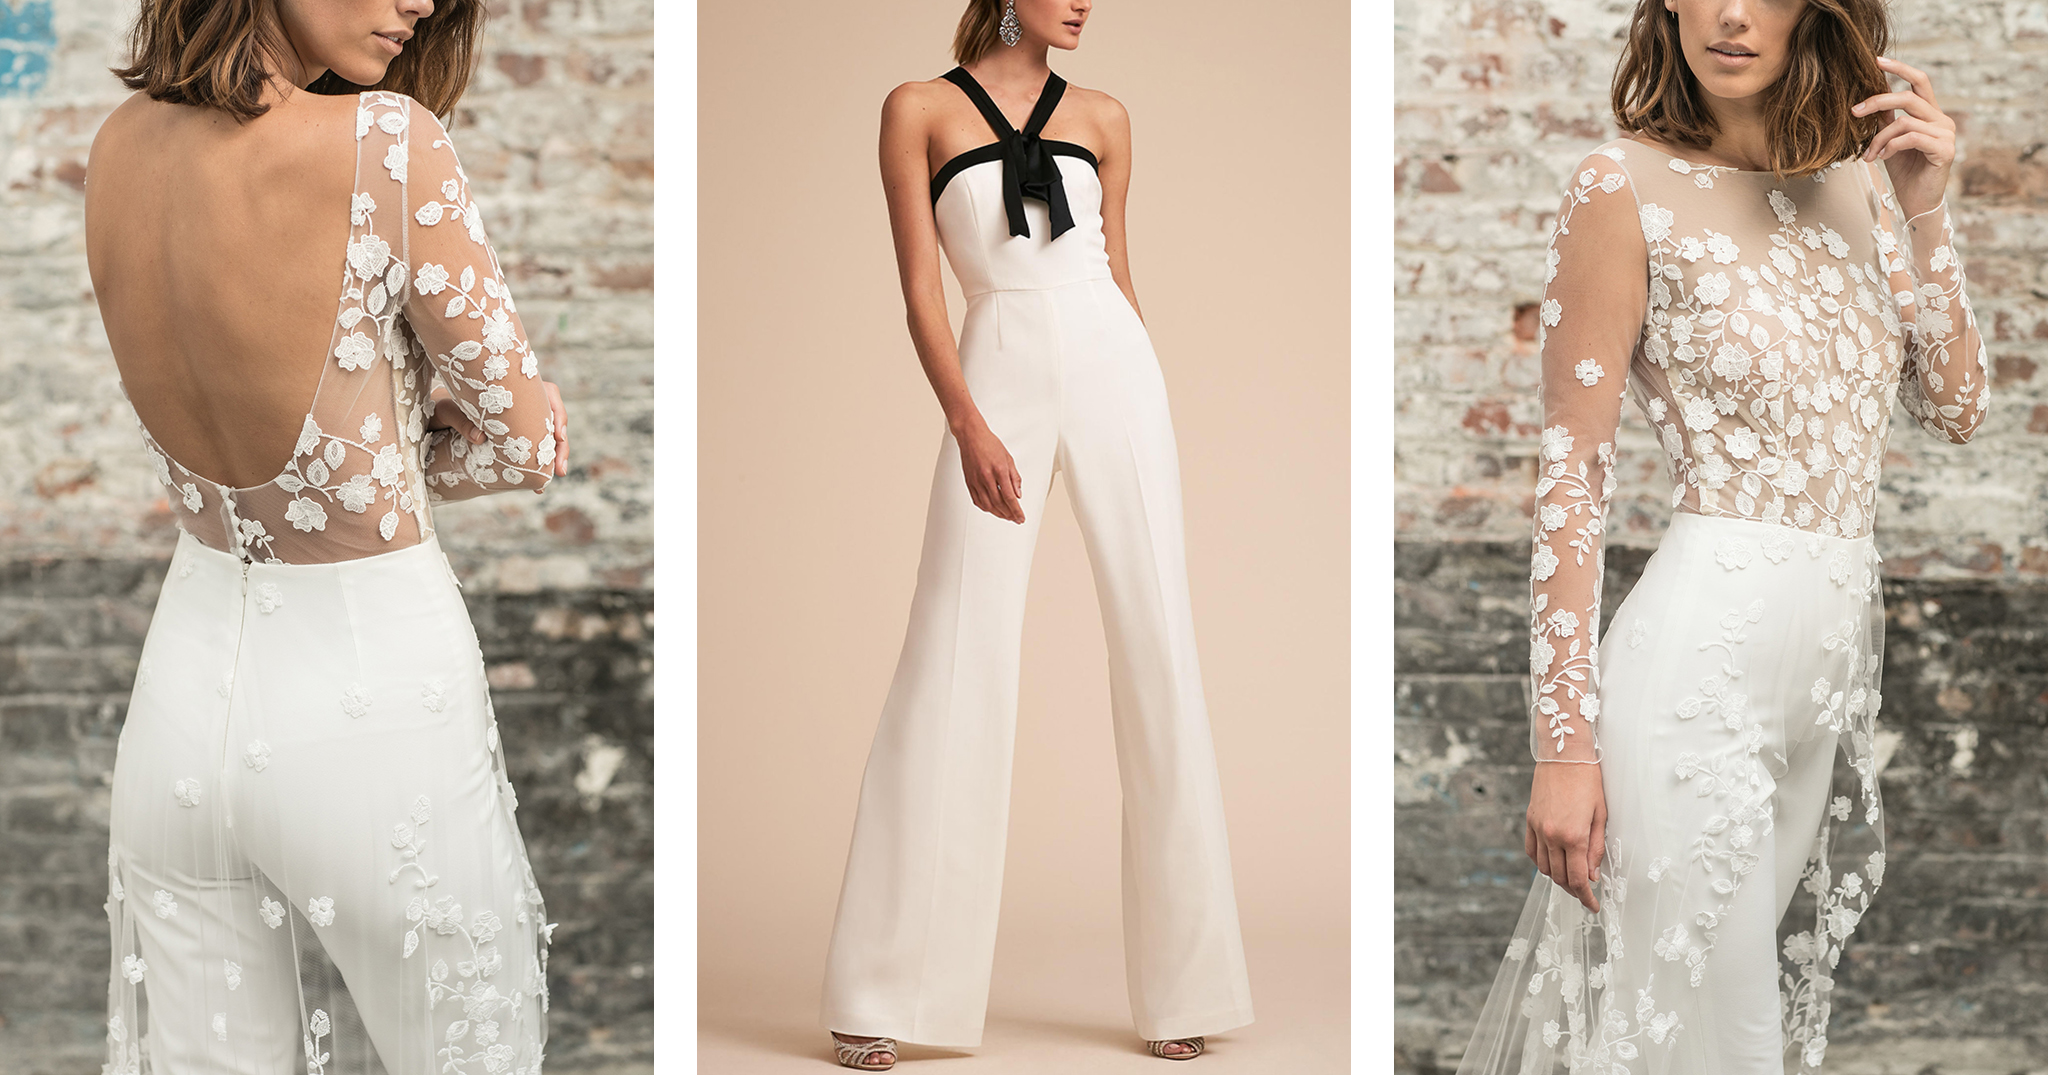 How To Incorporate A Wedding Jumpsuit Into Your Bridal Look ...